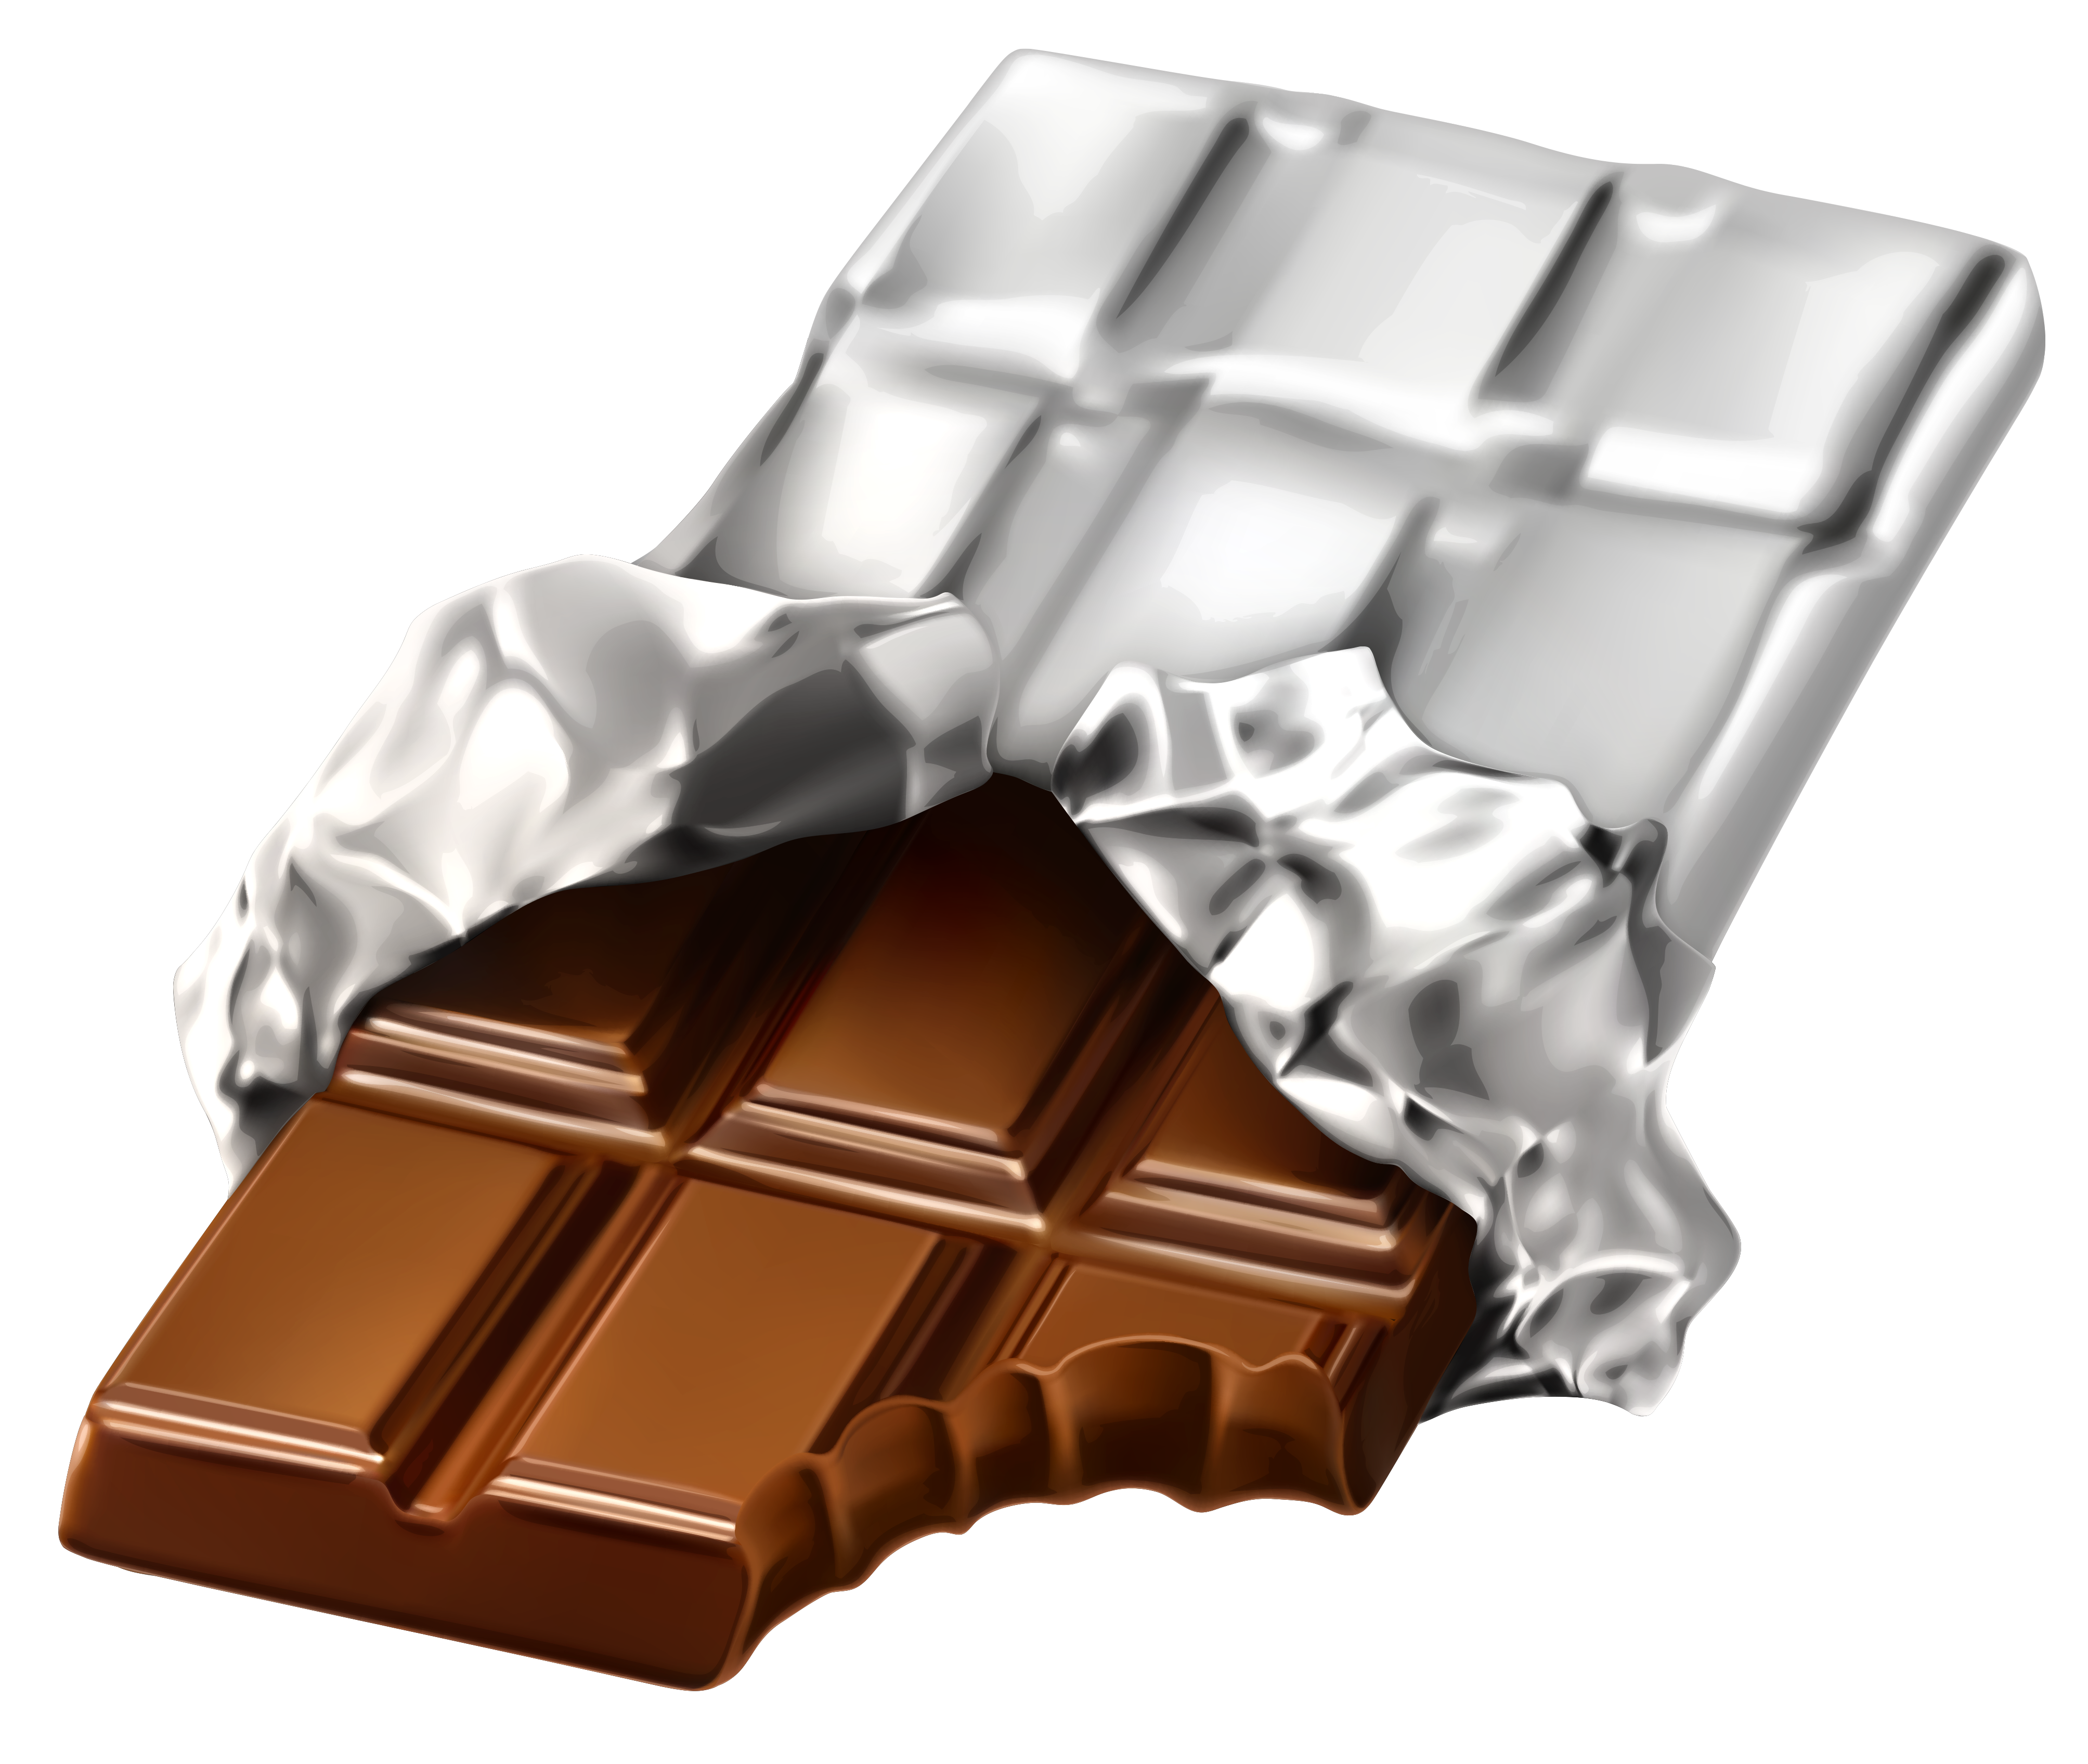 Chocolate png picture gallery. Bar clipart transparent